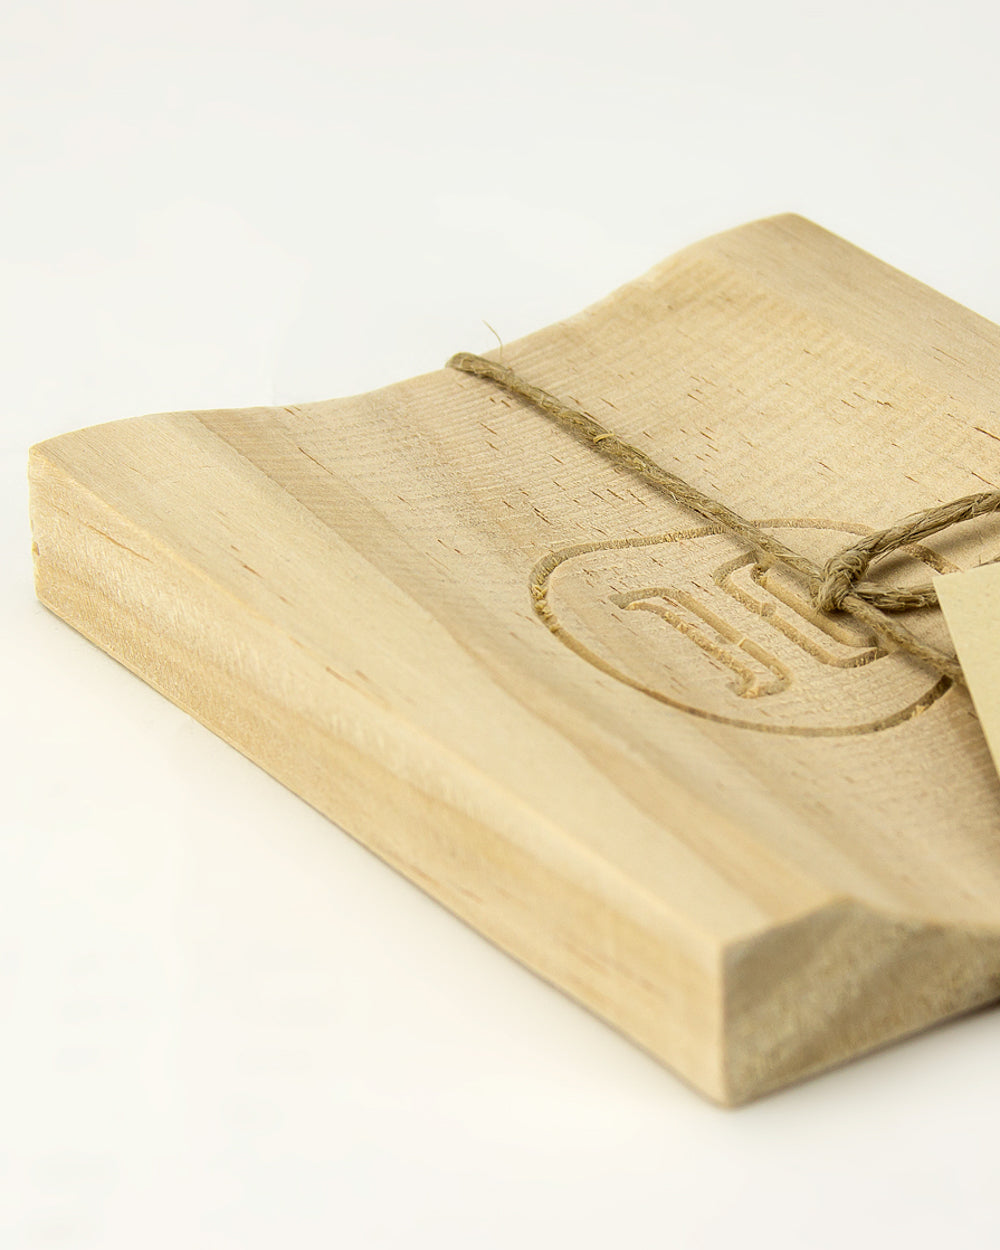 Wooden Soap Dish made from the Accoya Tree